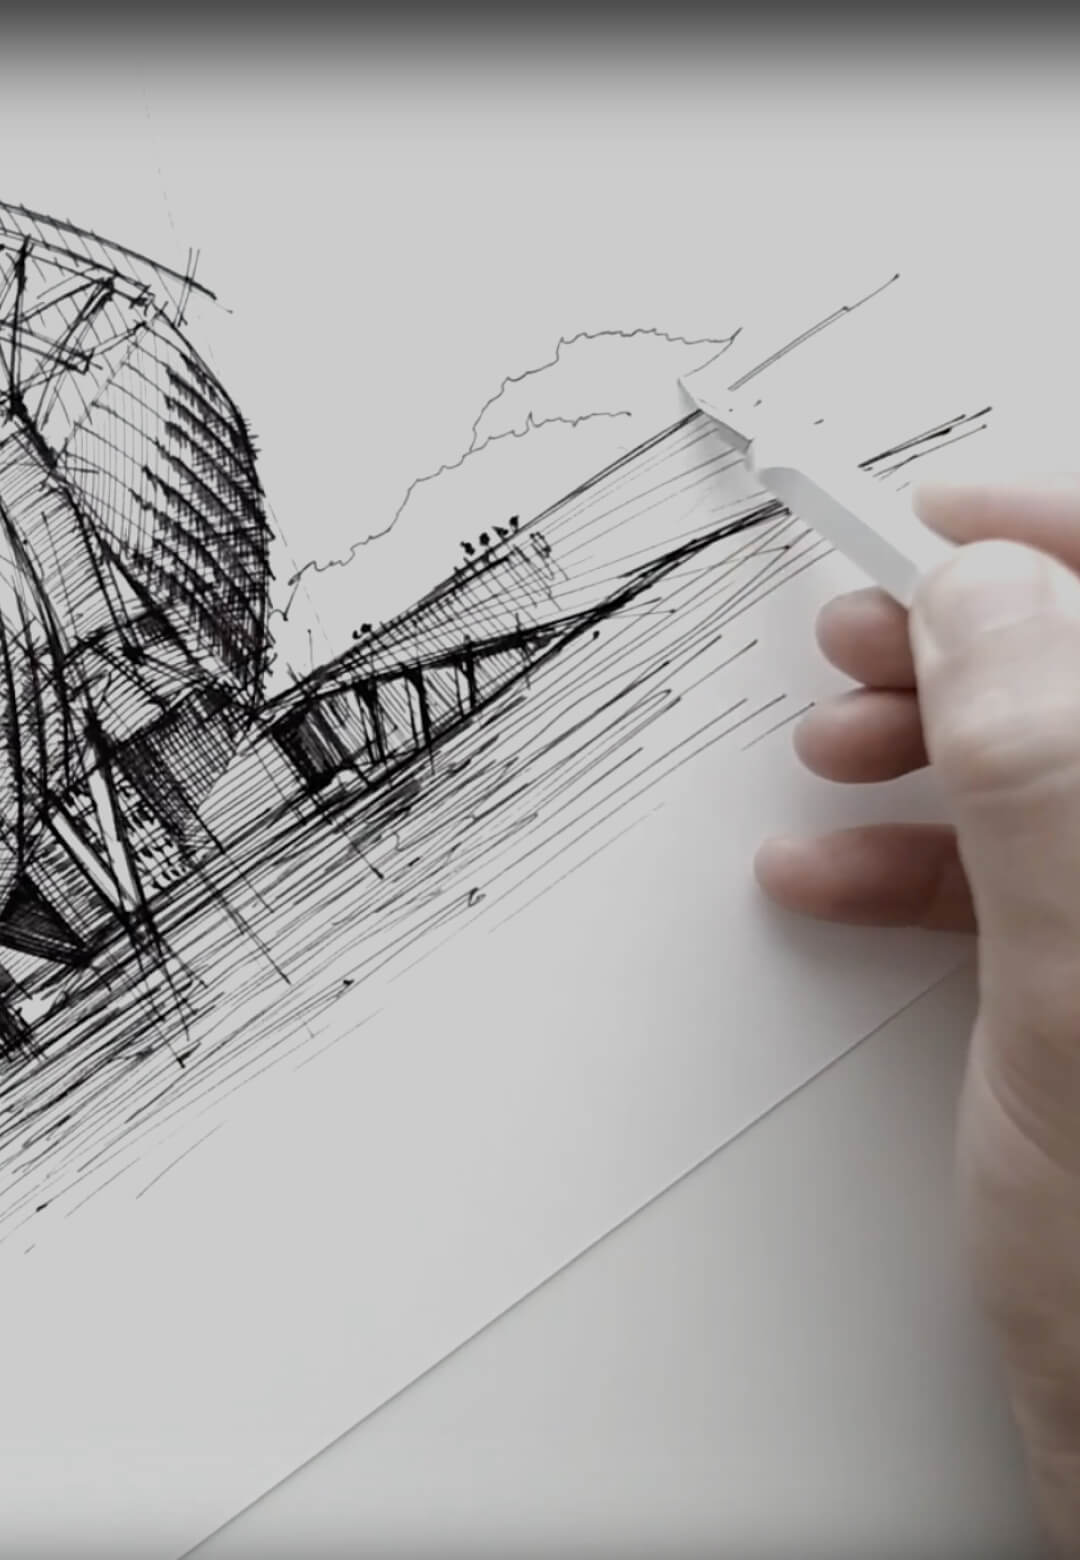 Sketching Fondation Louis Vuitton – a drawing tutorial by Dan Hogman | Dan Hogman | Column | STIRworld